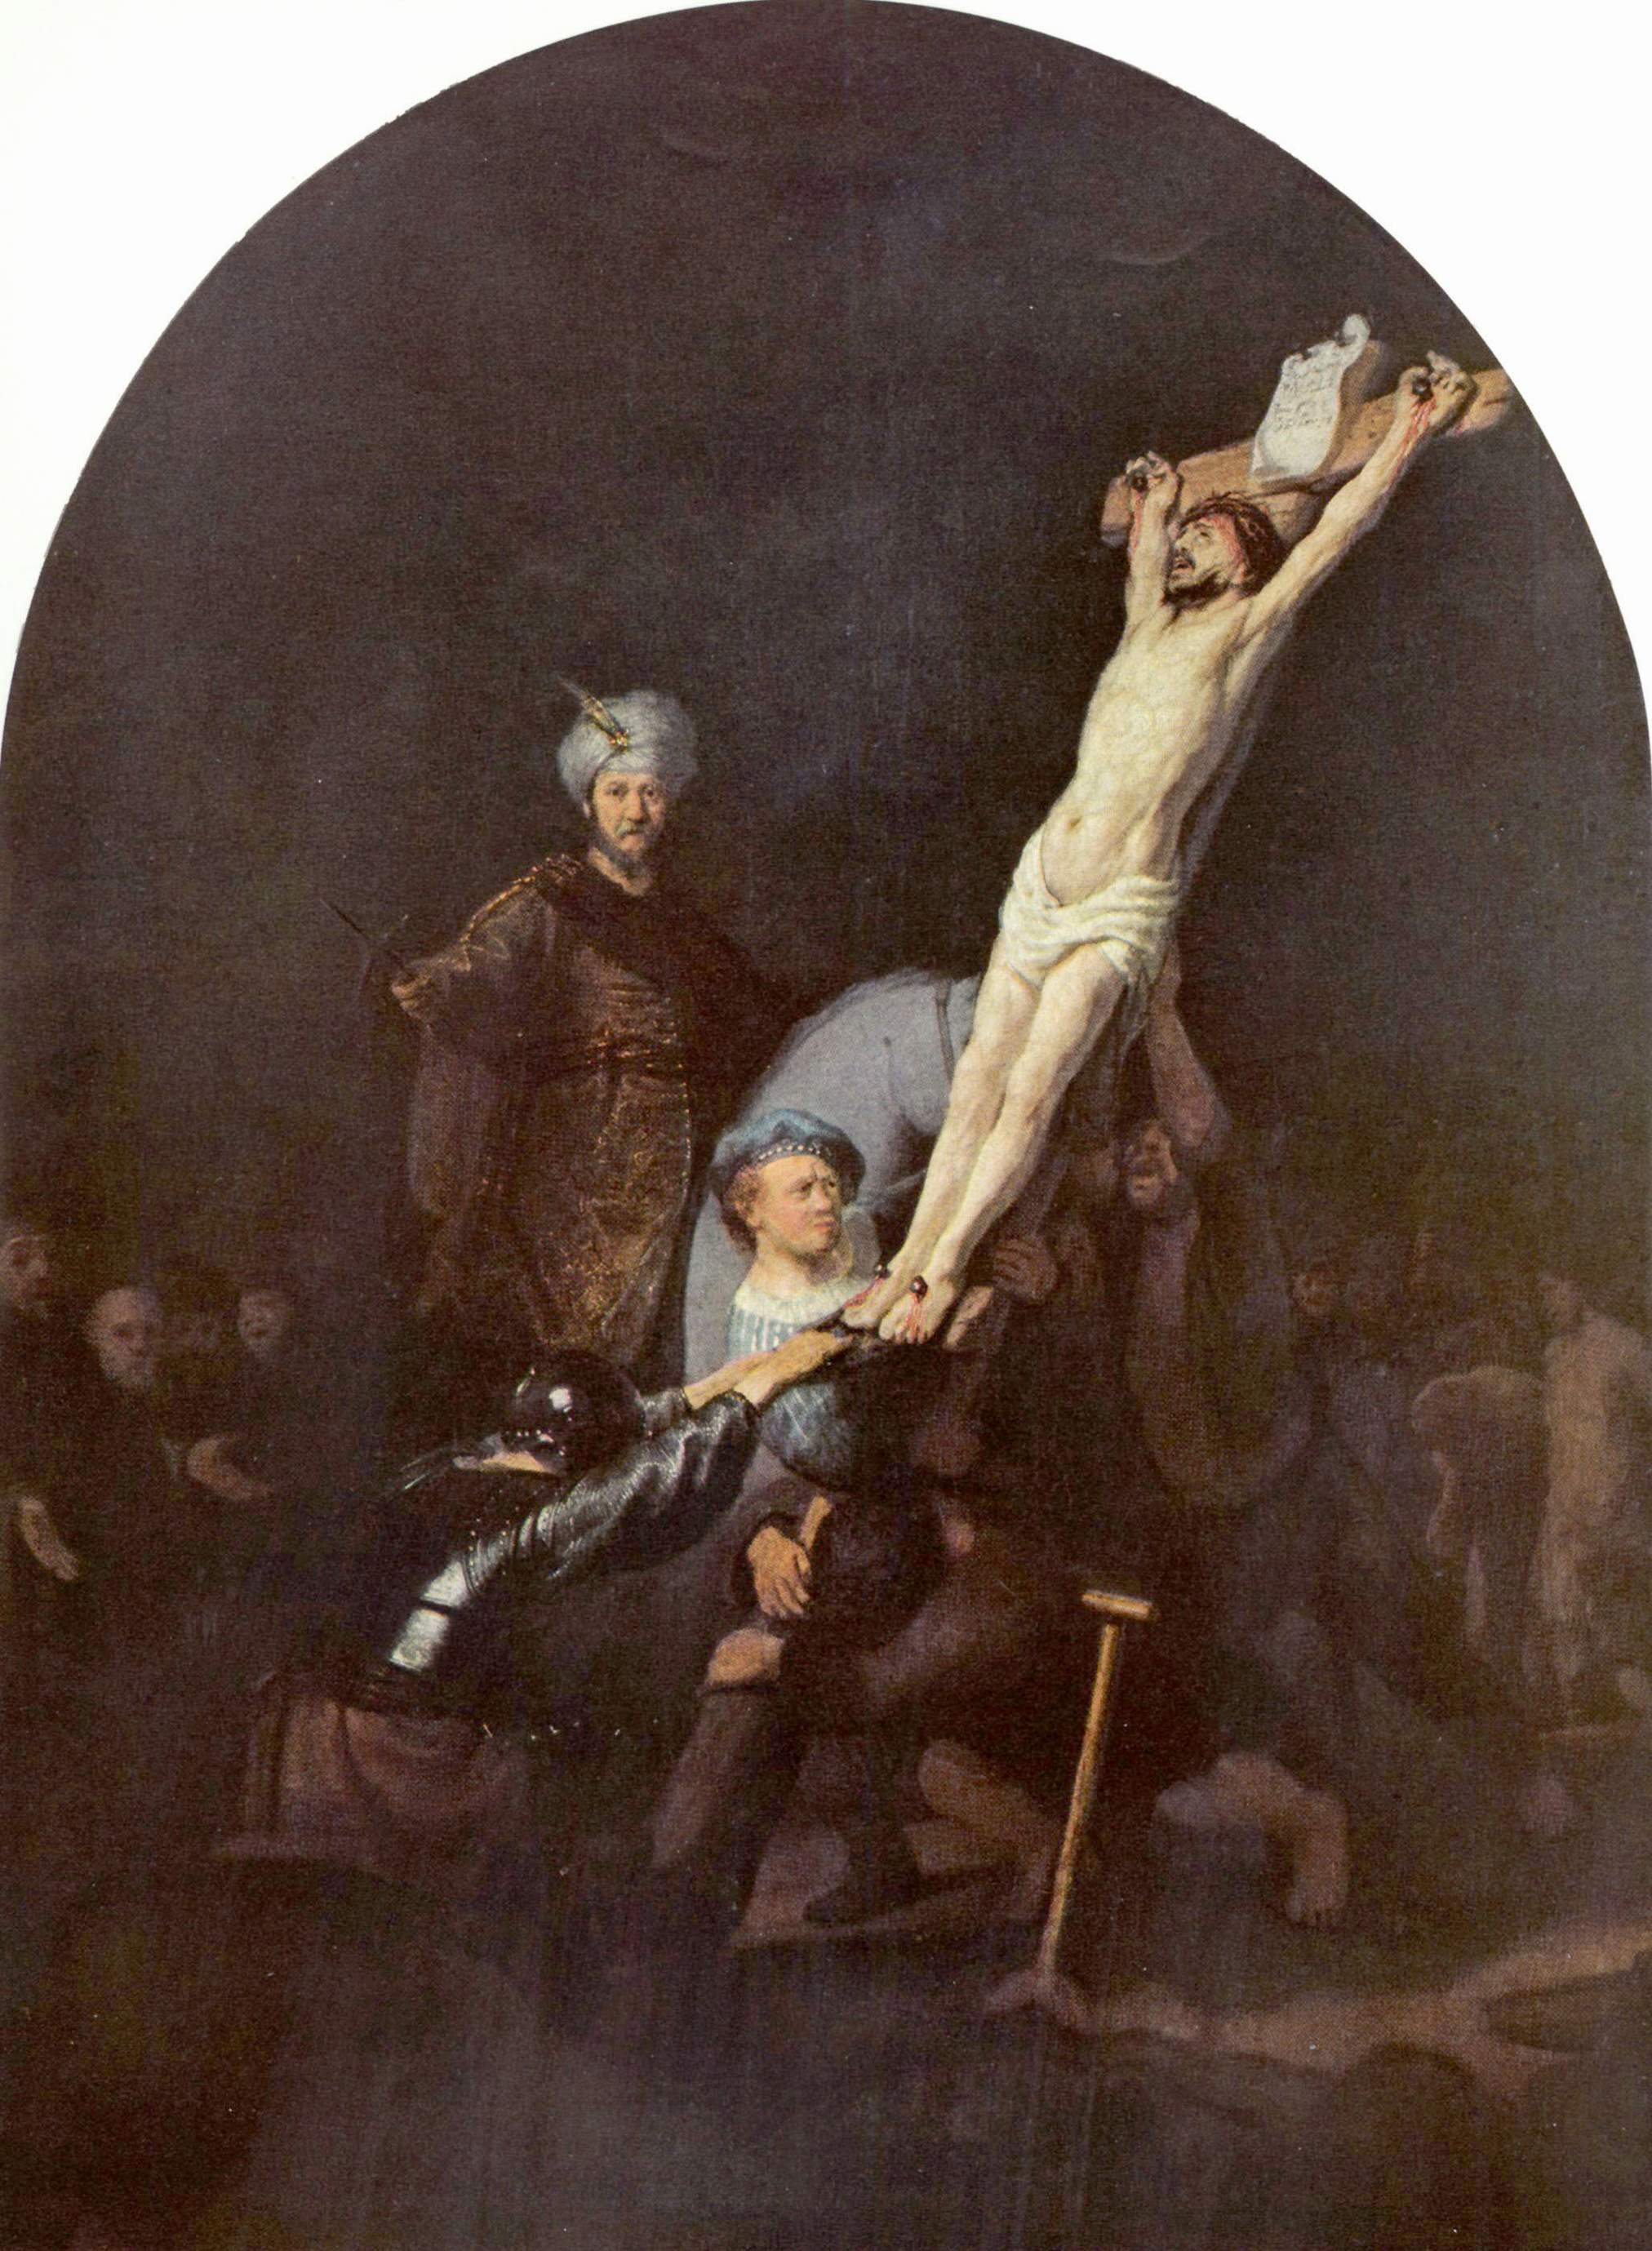 the eleventh station jesus is nailed to the cross u2013 shameless popery